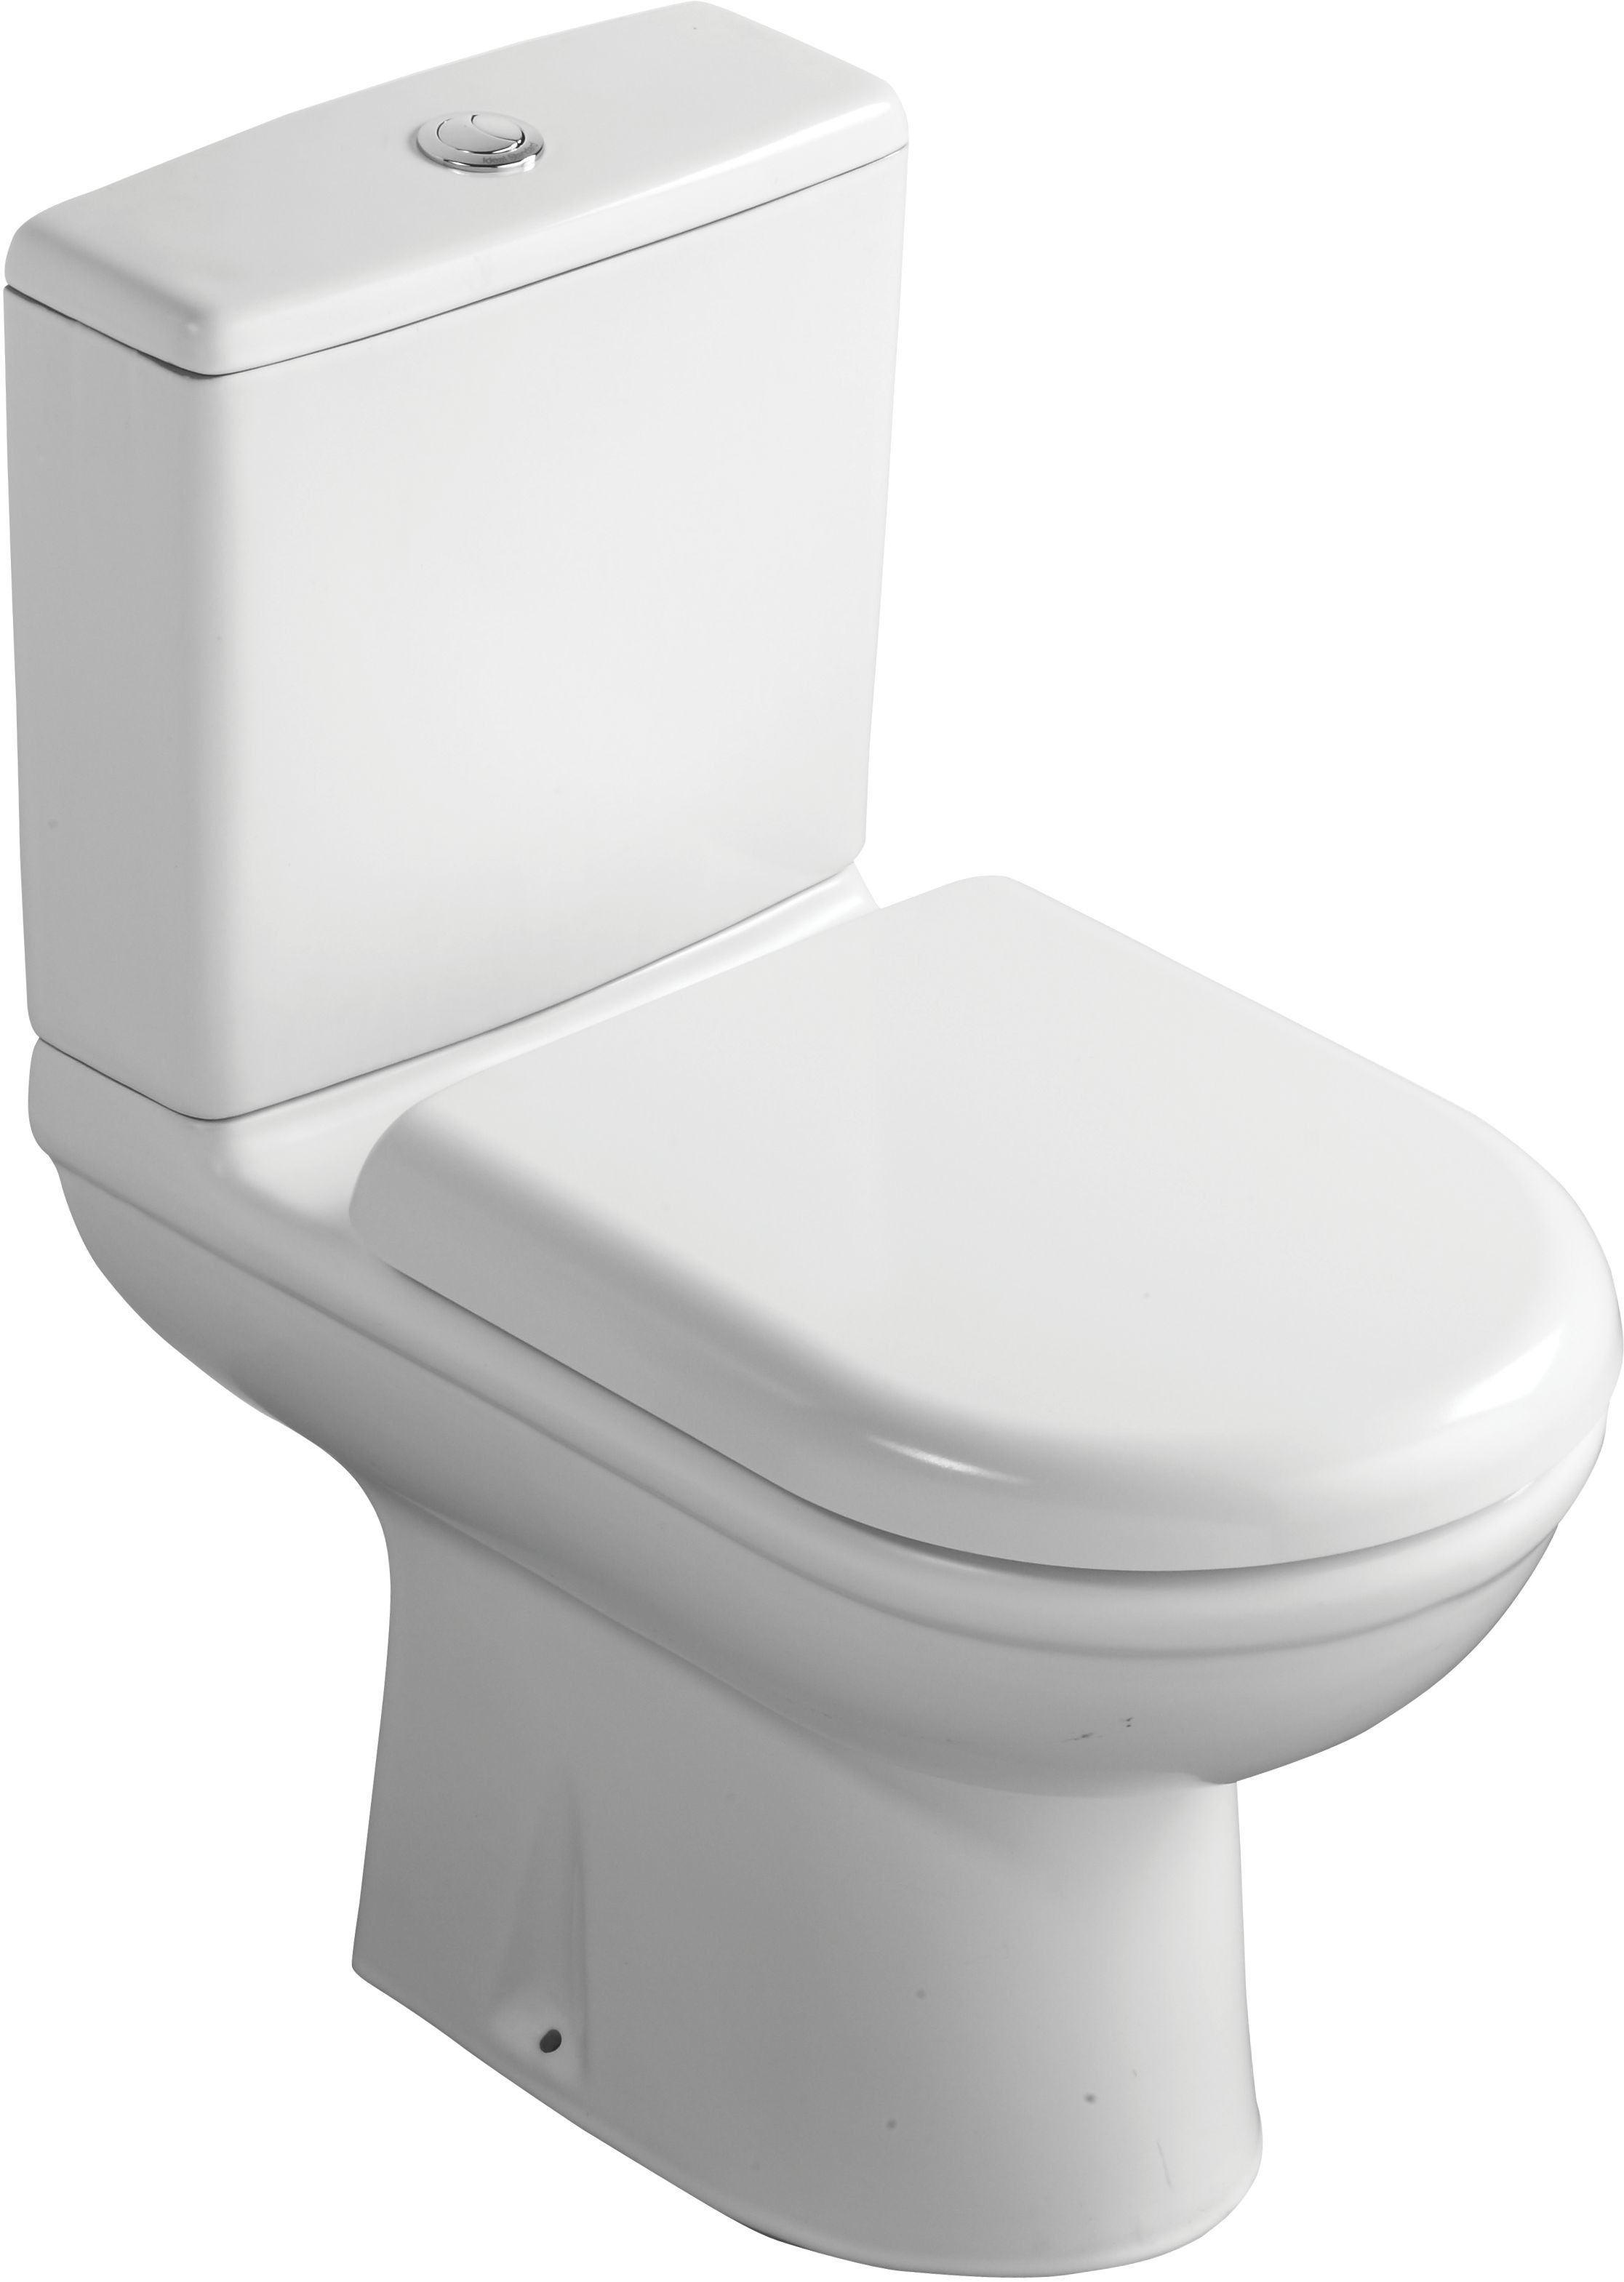 Ideal Standard Della Close Coupled Toilet With Soft Close